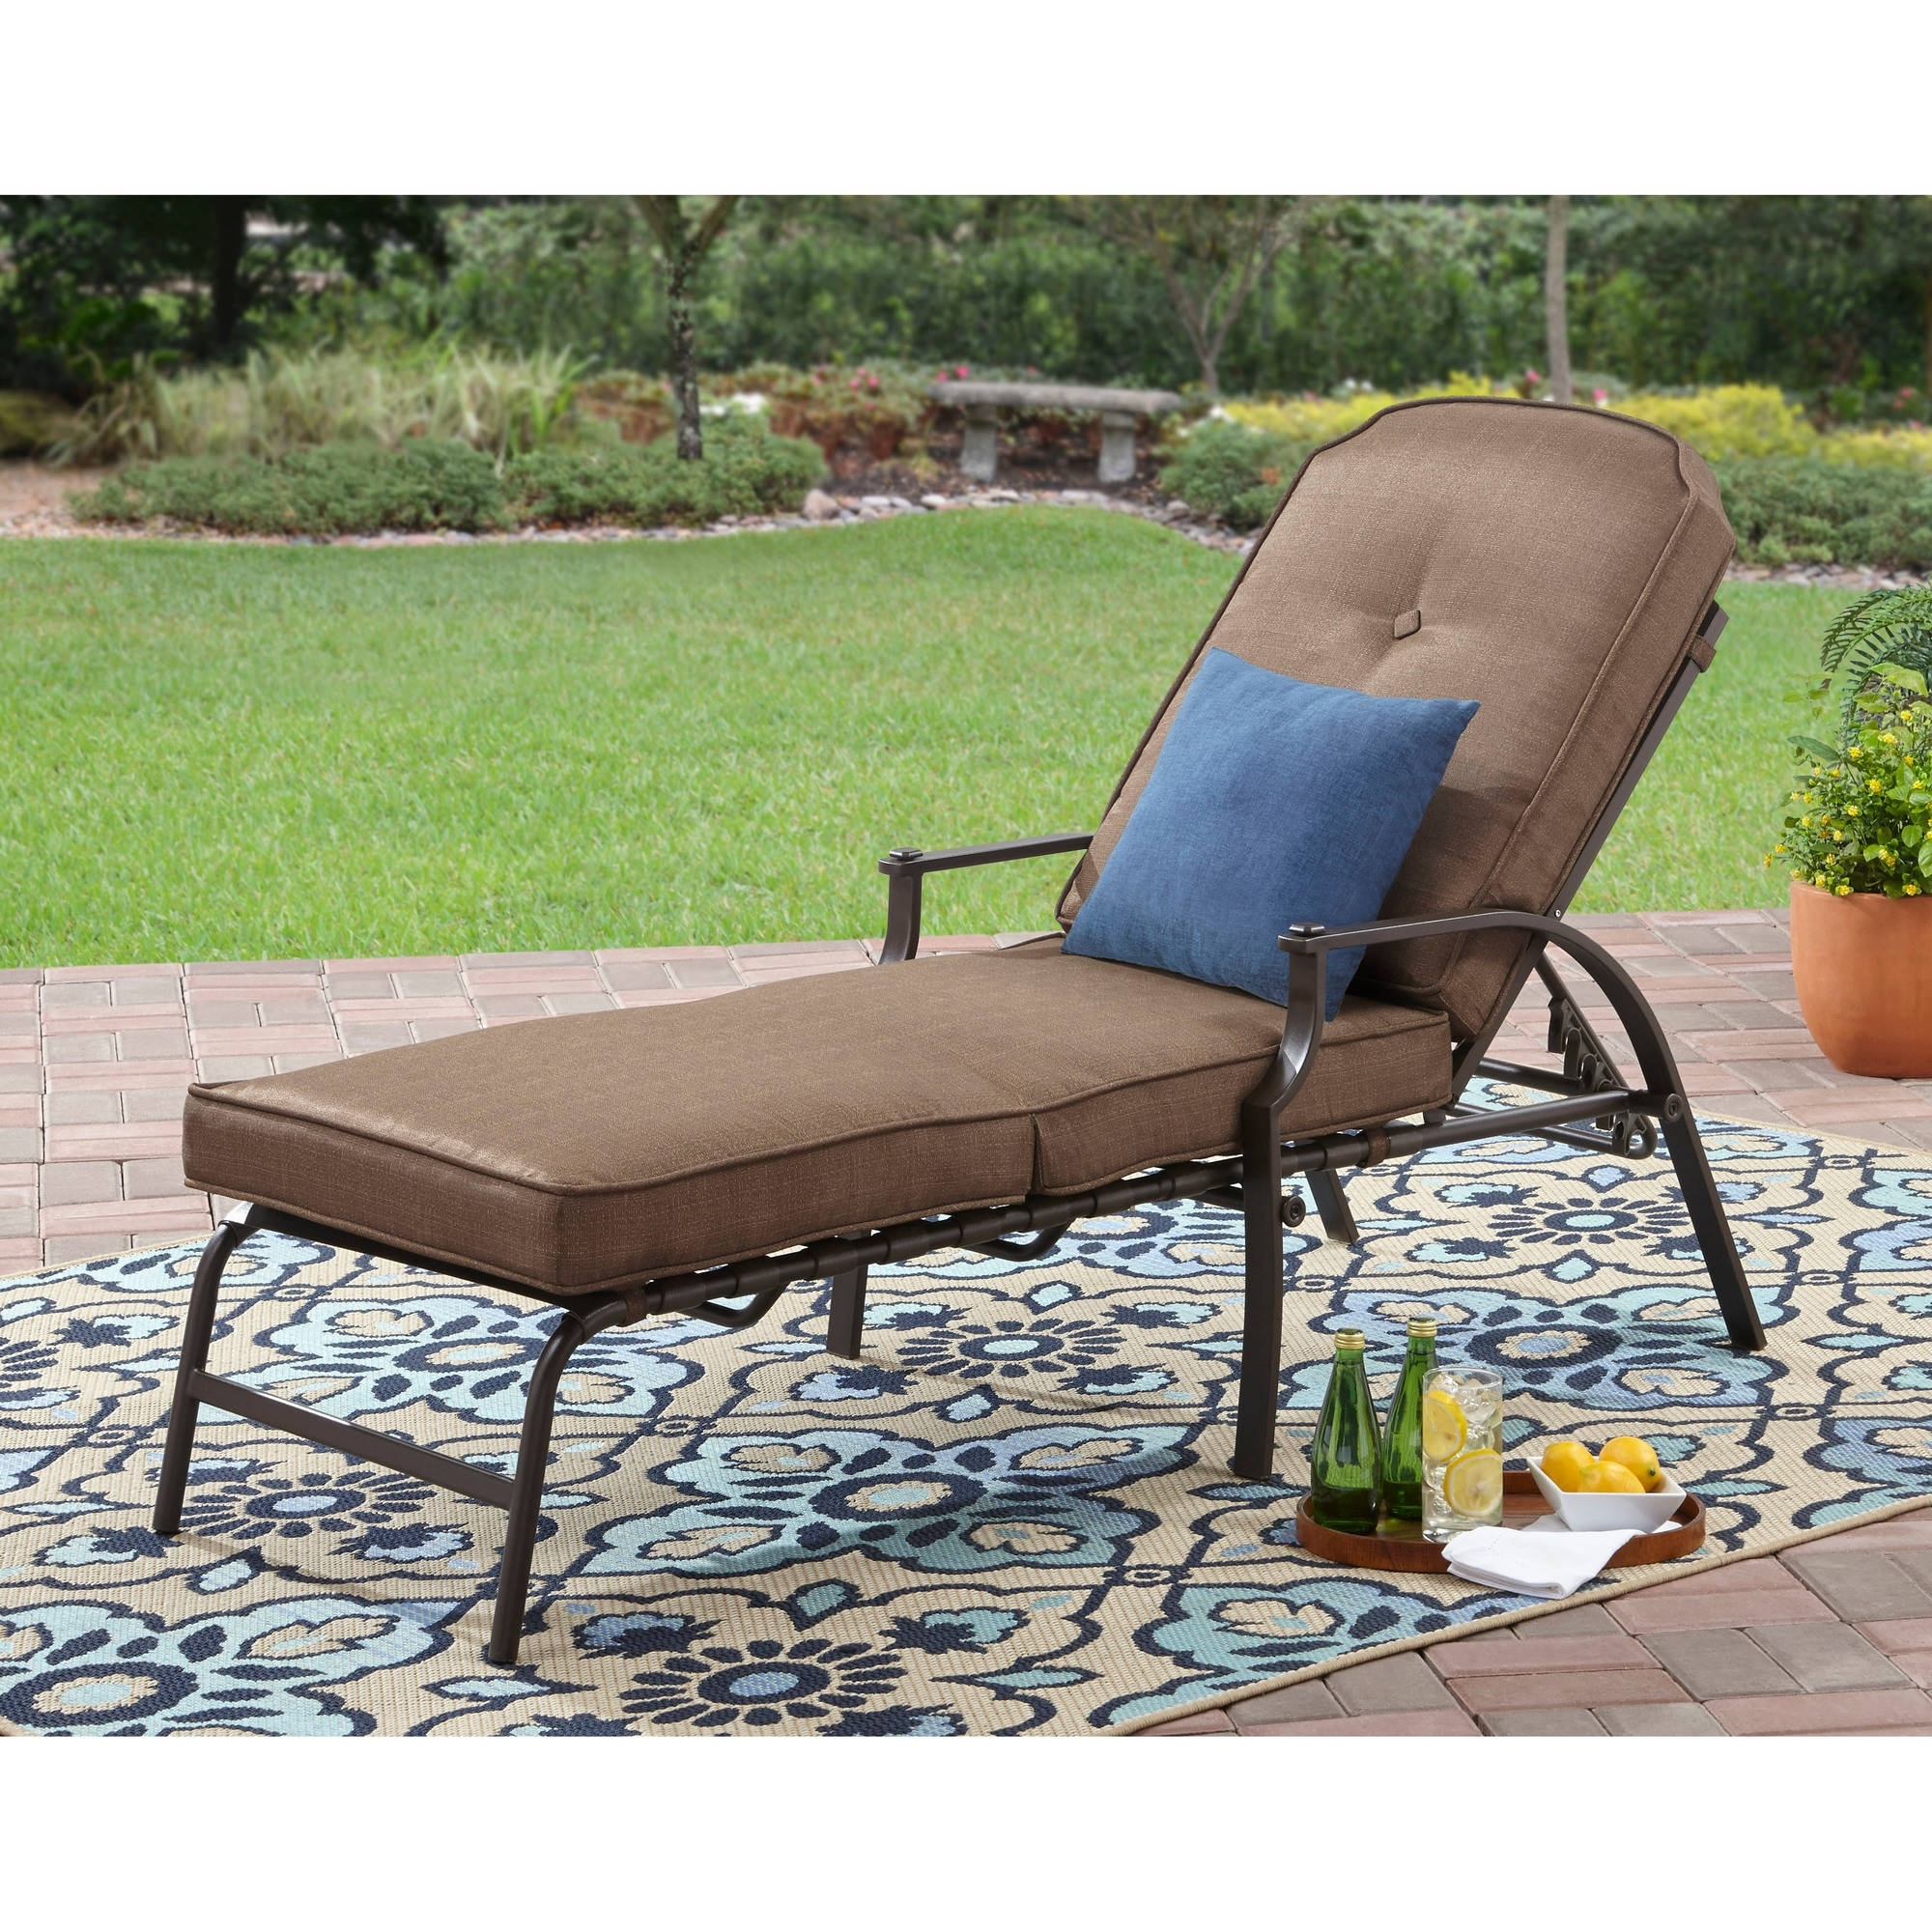 Well Liked Mainstays Wentworth Chaise Lounge – Walmart With Vinyl Outdoor Chaise Lounge Chairs (View 15 of 15)